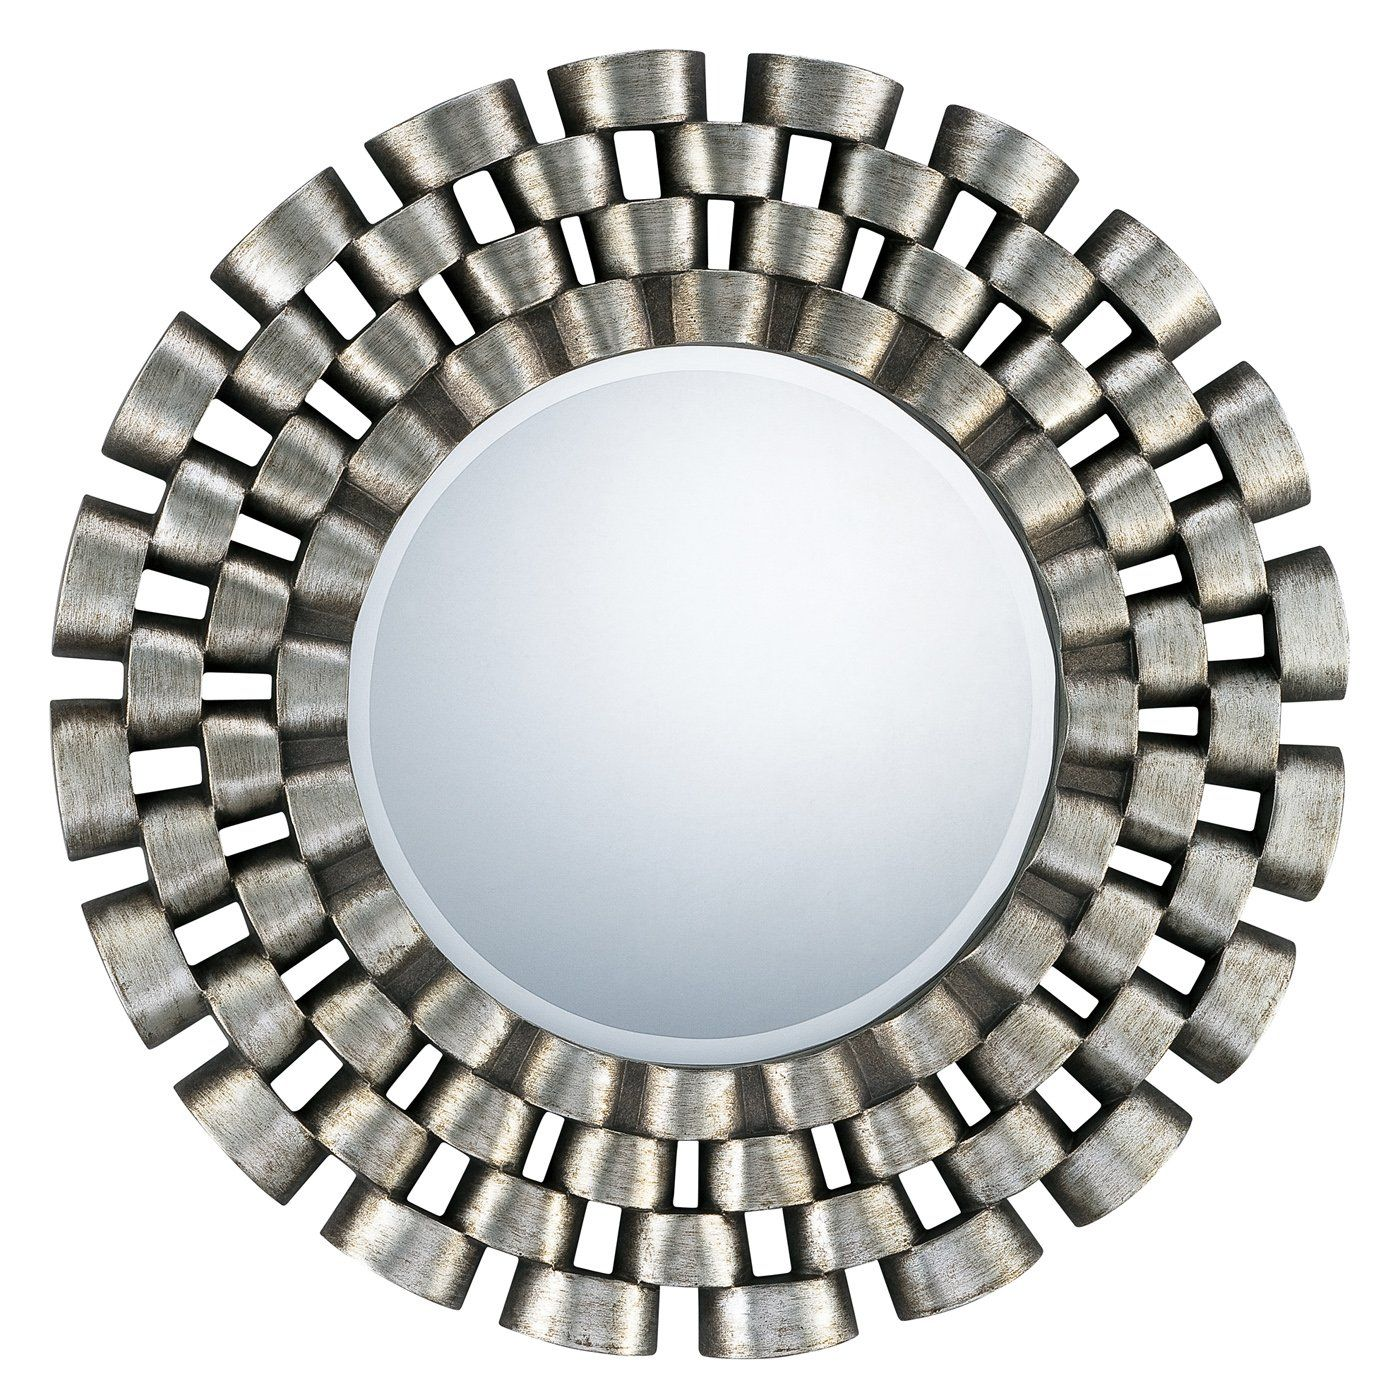 Quoizel Qr981 Small Round Decorative Mirror Home Decor Pinterest